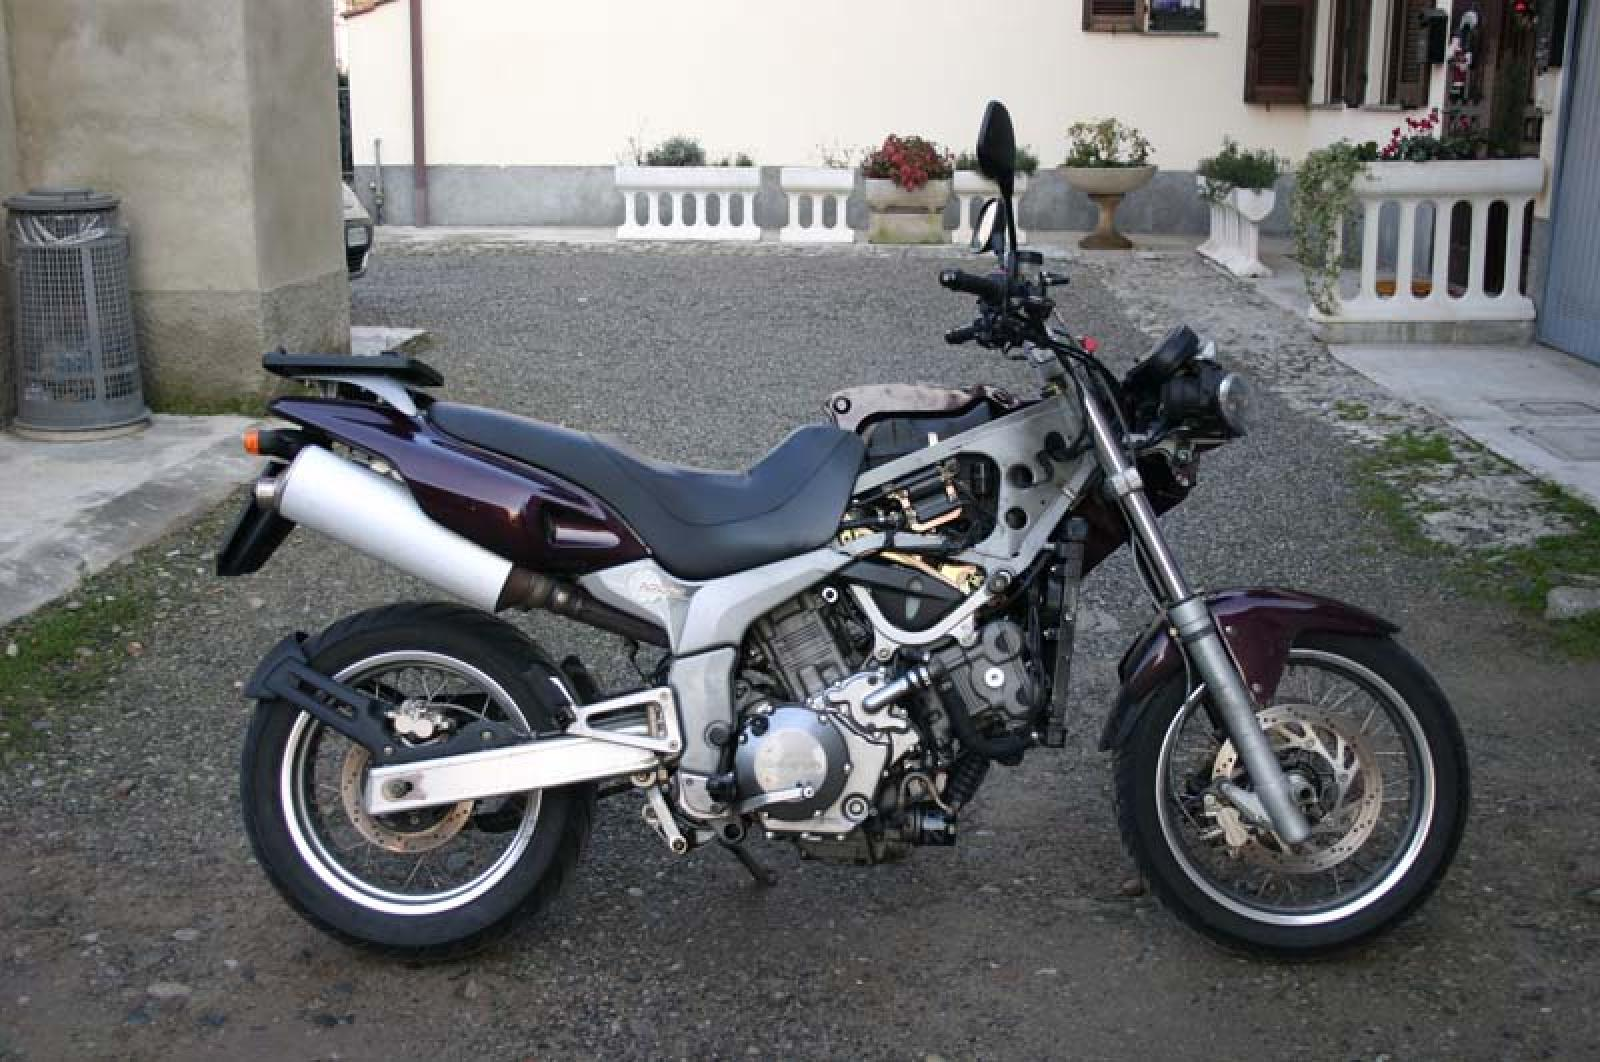 Cagiva Navigator 1000 2006 images #67721